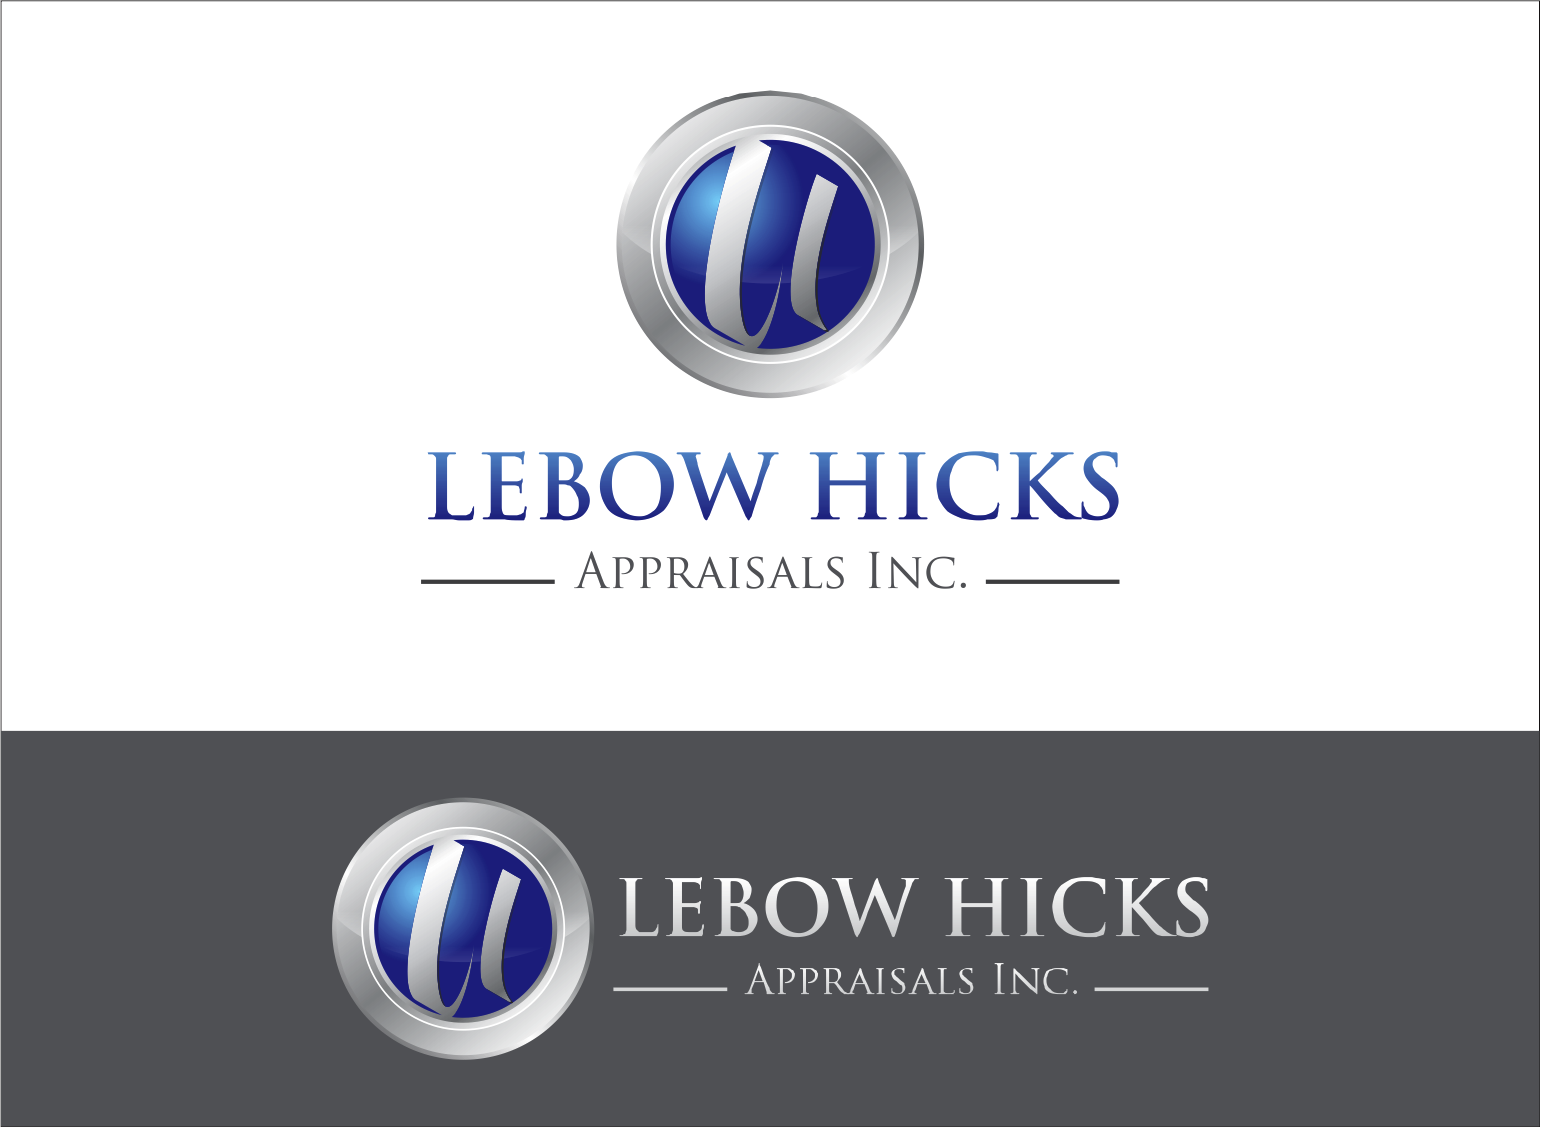 Logo Design by Armada Jamaluddin - Entry No. 105 in the Logo Design Contest Fun Logo Design for Lebow, Hicks Appraisal Inc..